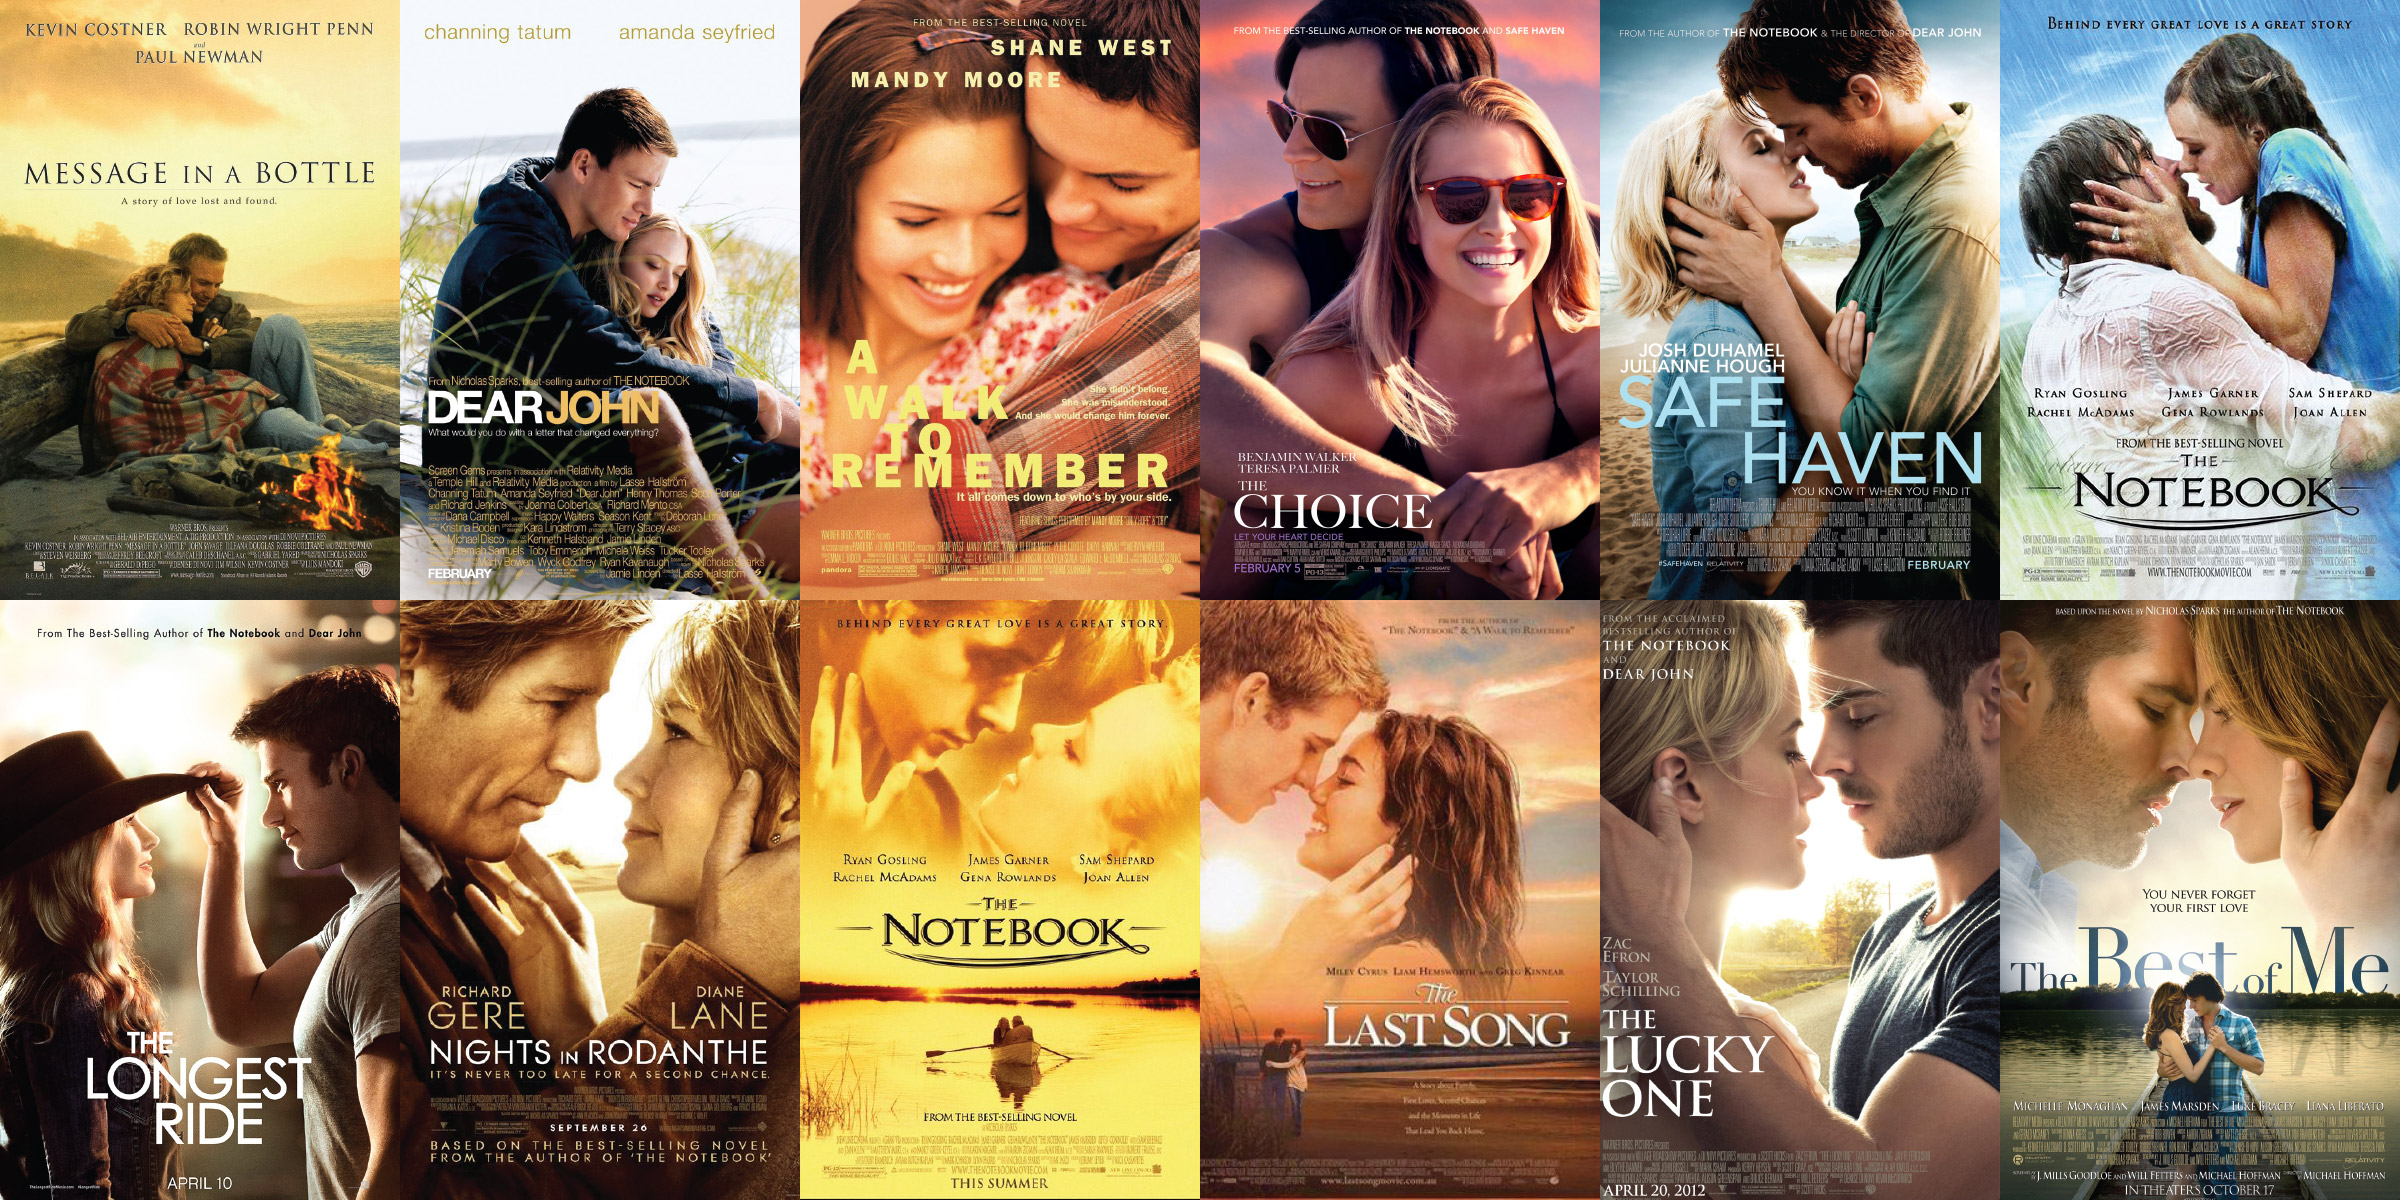 Posters for every single movie adaptation of Nicholas Sparks novels. I rest my case. Message in A Bottle © 1999 Warner Bros. ; A Walk to Remember © 2002 Warner Bros. ; The Notebook © 2004 New Line Cinema ; Nights in Rodanthe © 2008 Warner Bros. Pictures ; Dear John © 2010 Screen Gems ; The Last Song © 2010 Walt Disney Studios Motion Pictures ; The Lucky One © 2012 Warner Bros. Pictures ; Safe Haven © 2013 Relativity Media ; The Best of Me © 2014 Relativity Media ; The Longest Ride © 2015 Twentieth Century Fox Film Corporation ; The Choice © 2016 Lionsgate